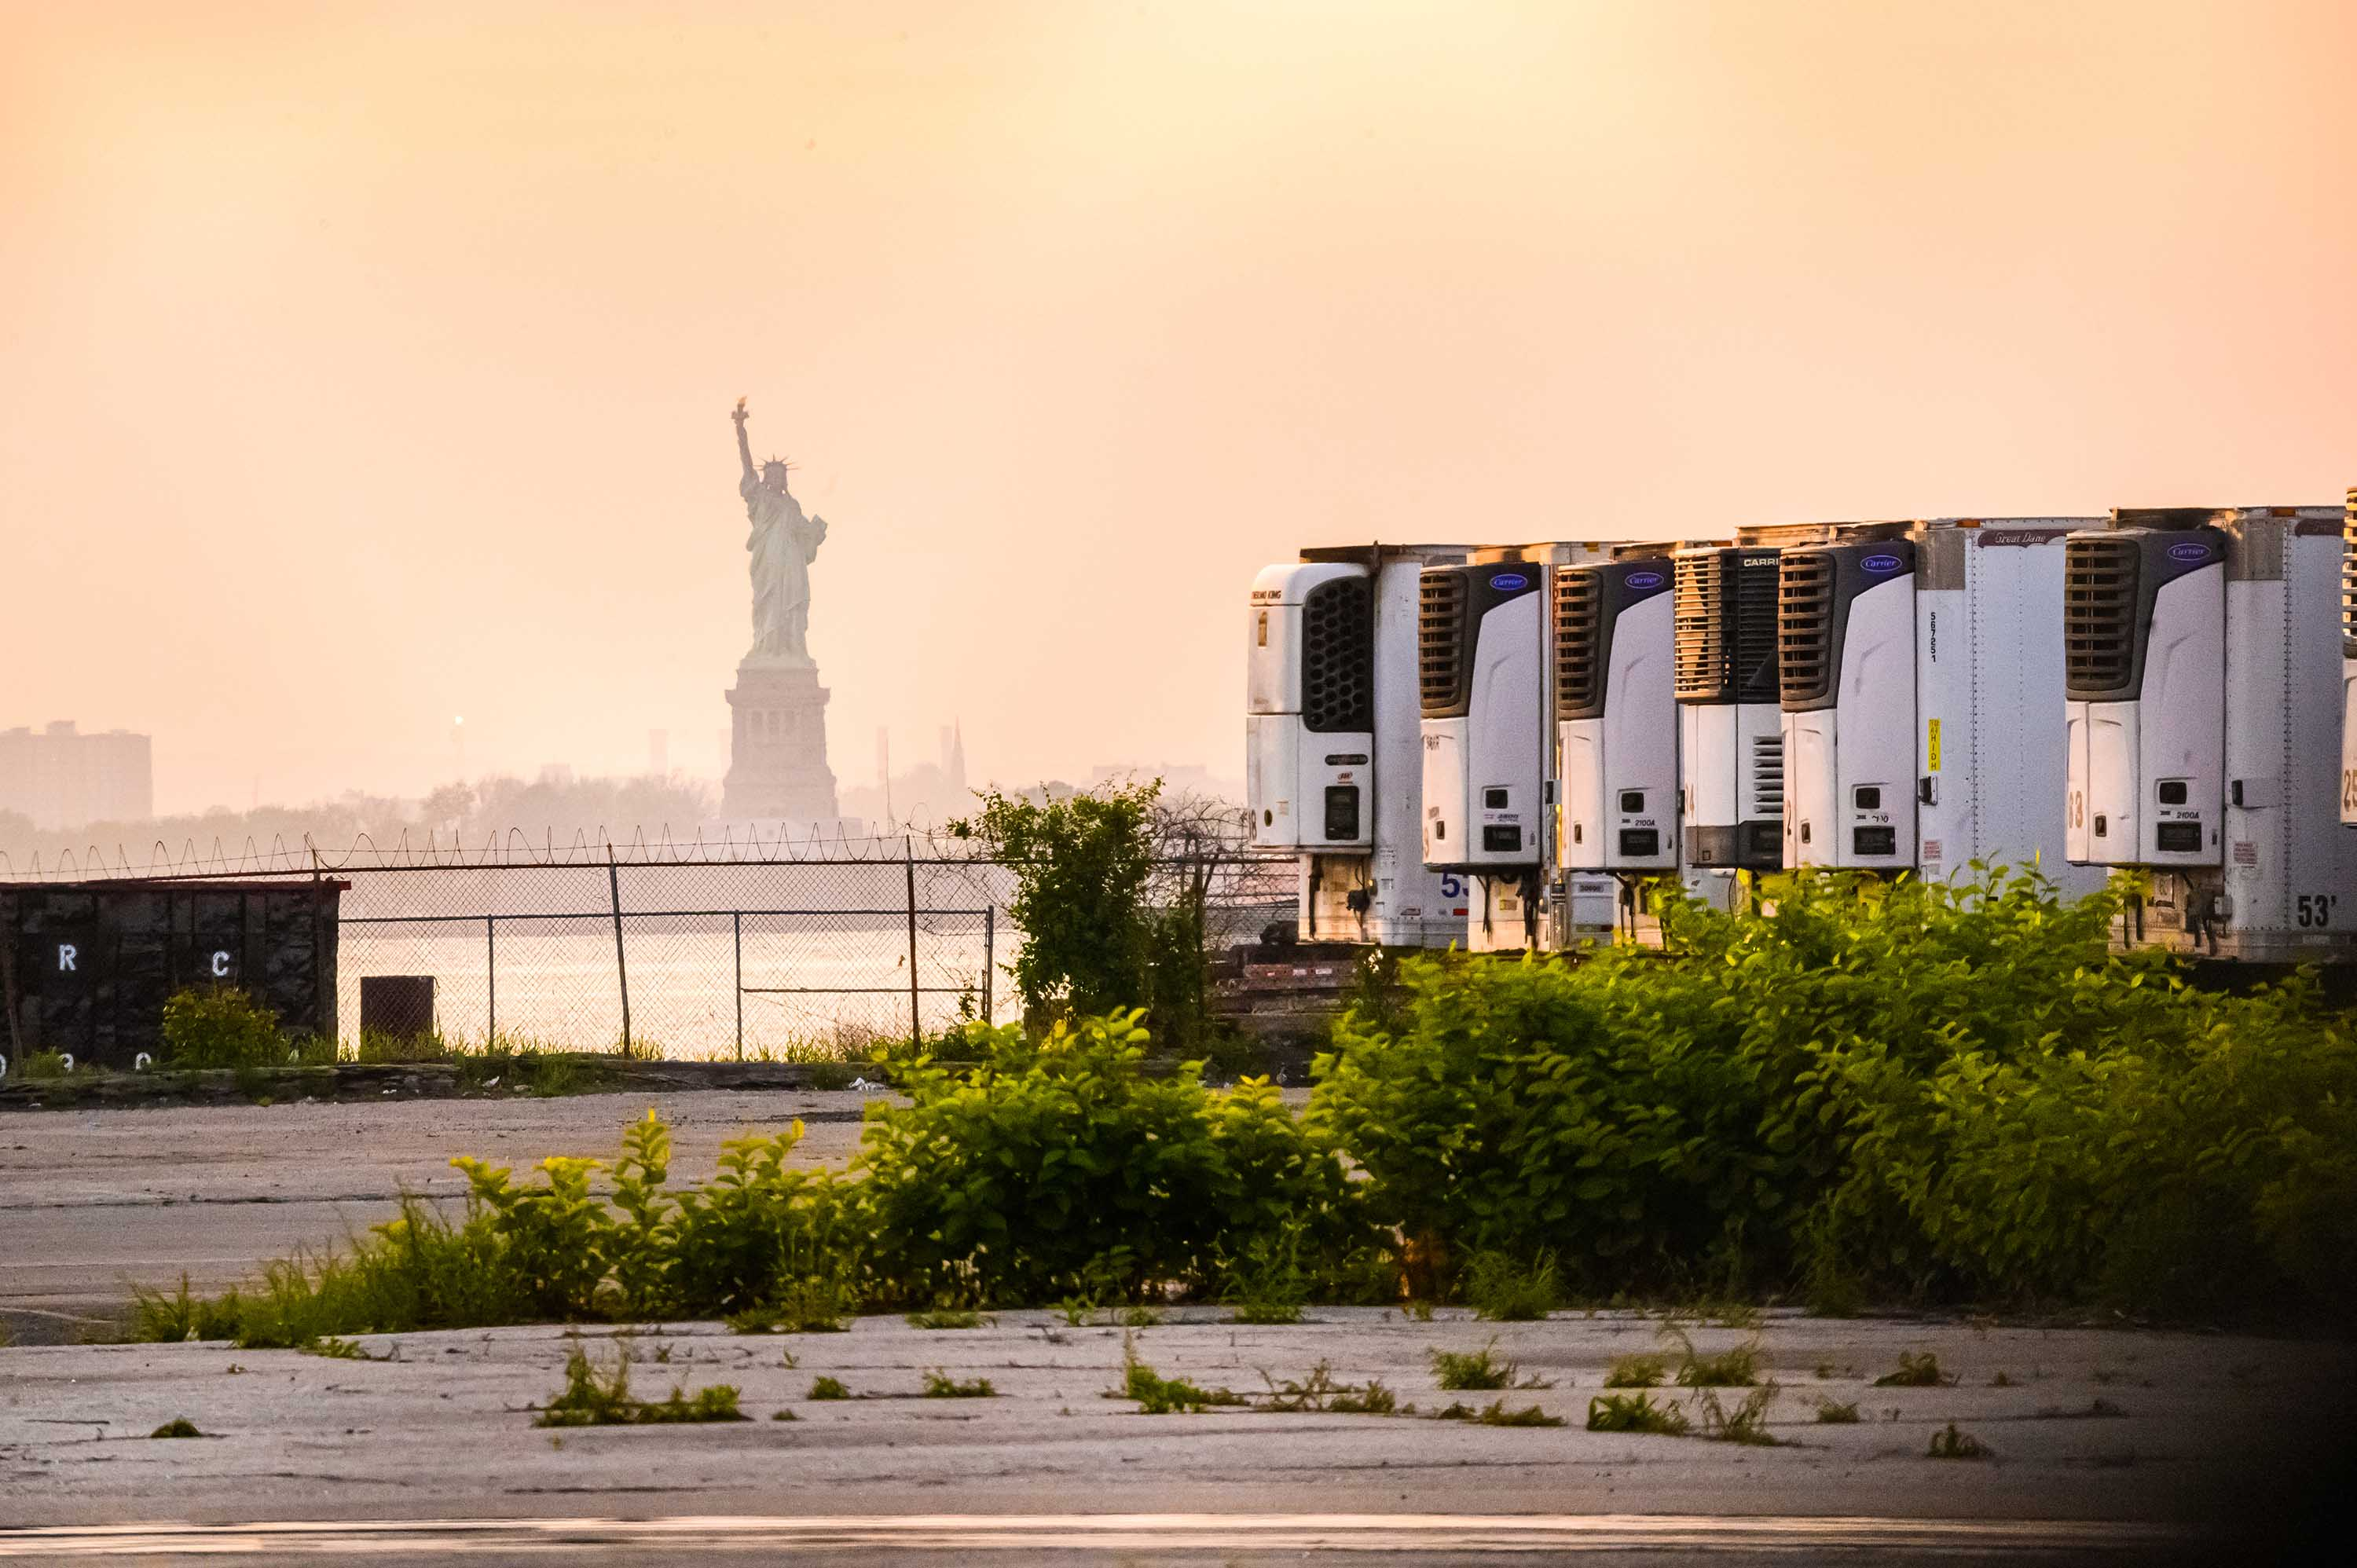 The Statue of Liberty is seen behind refrigeration trucks that function as temporary morgues for coronavirus victims at the South Brooklyn Marine Terminal in New York City on May 25.